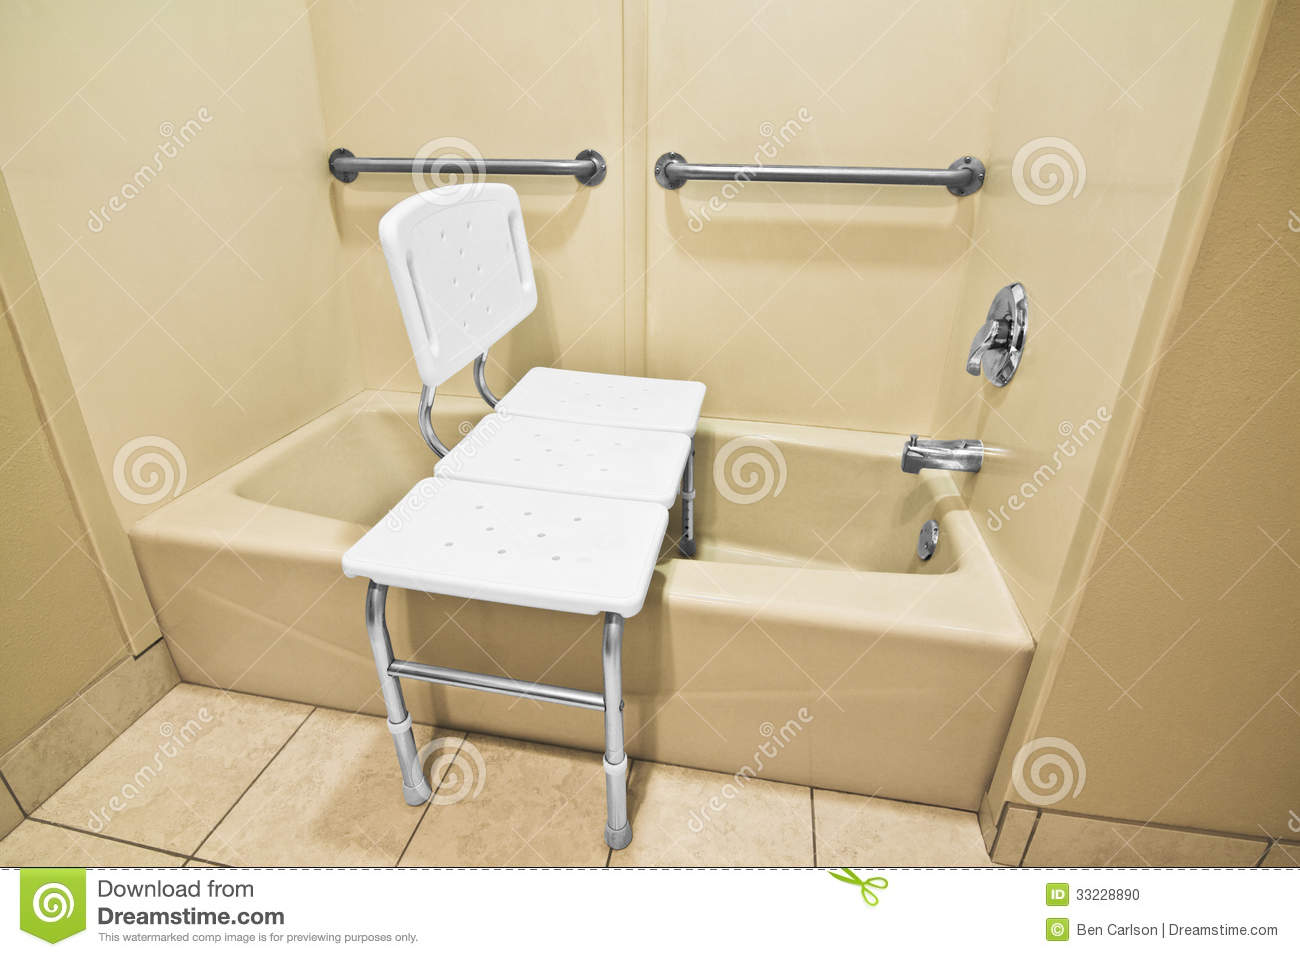 Handicap Bath Chair Handicap Bathing Chair Stock Photo Image 33228890